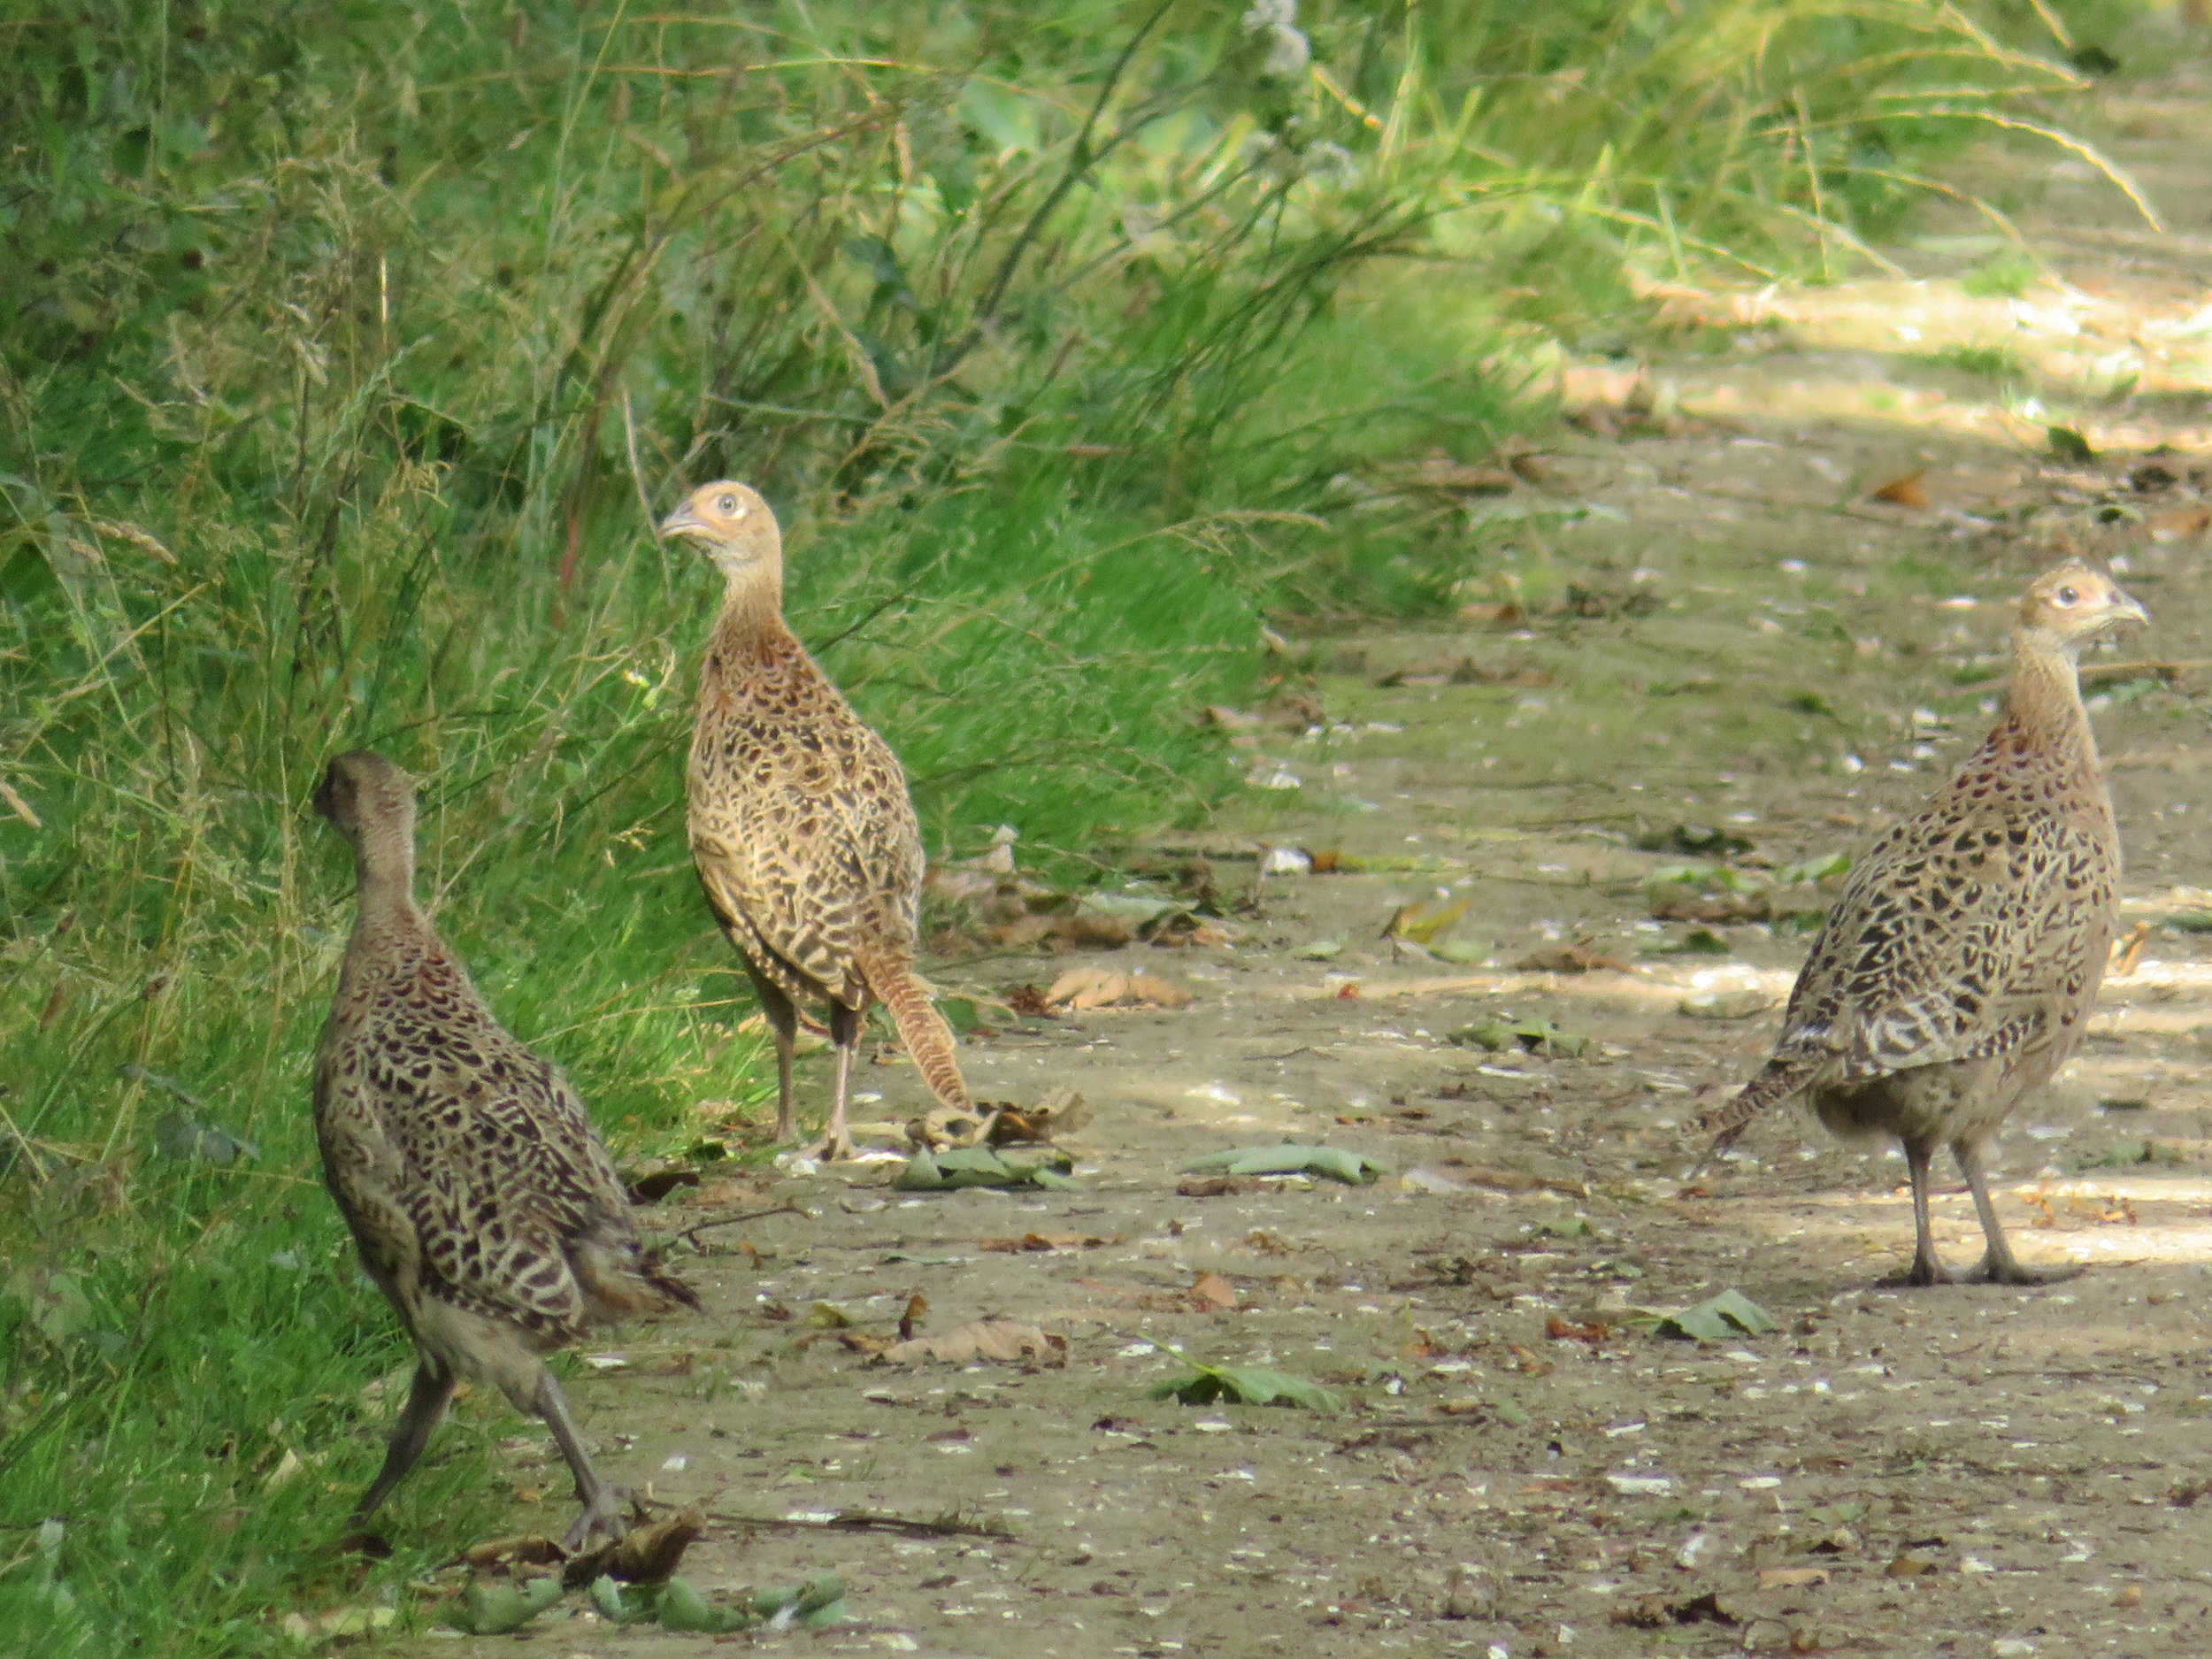 A covey of pheasants scurried along the path in front of us, clearly startled by our presence, but seemingly unable to get off the path and out of our way … or each others, for that matter.